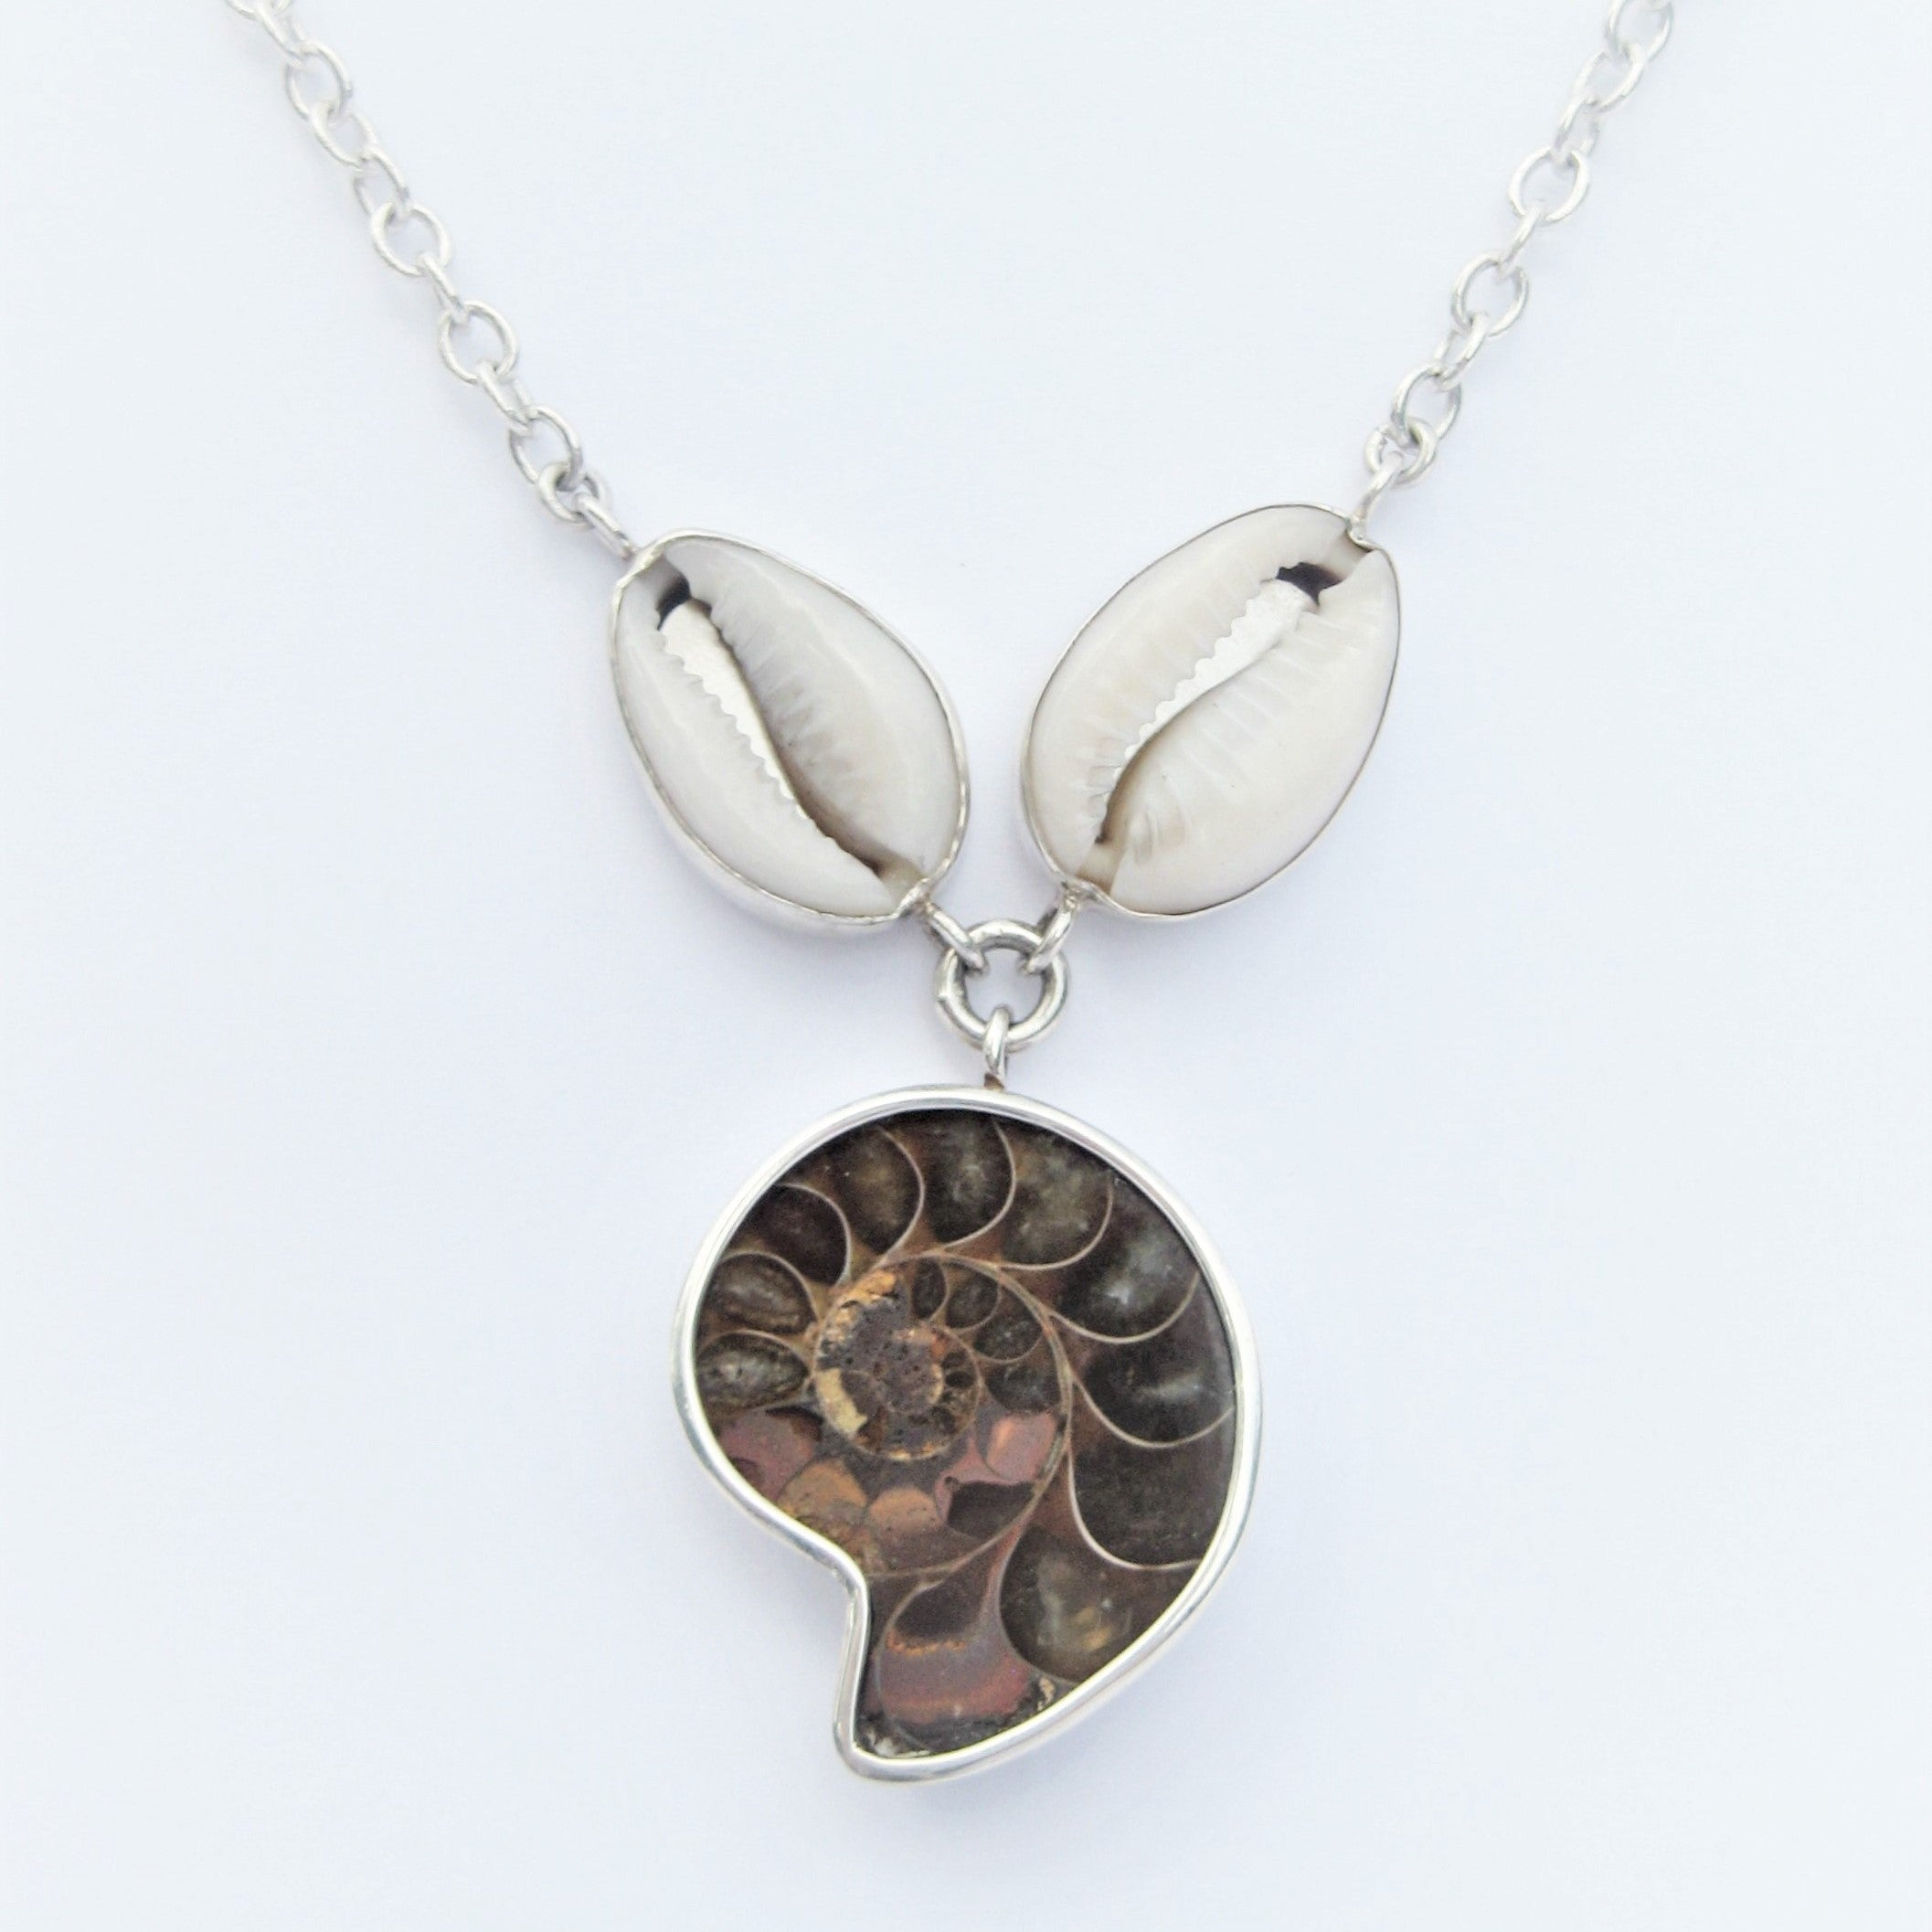 Ammonite and Cowrie Shell Necklace